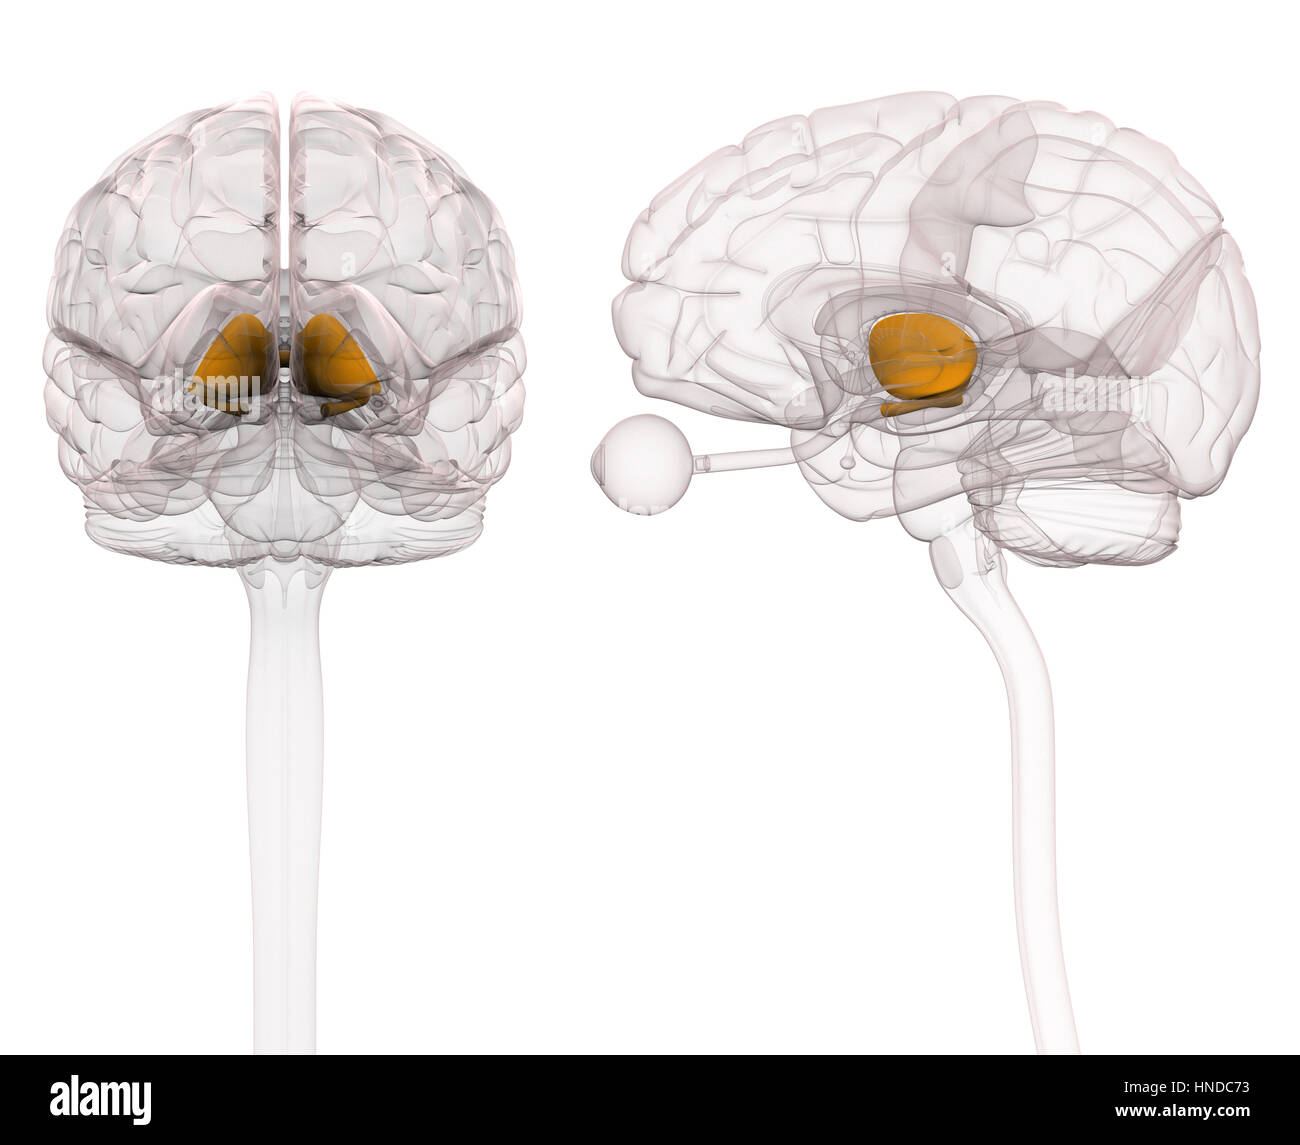 Thalamus Brain Anatomy - Stock Image